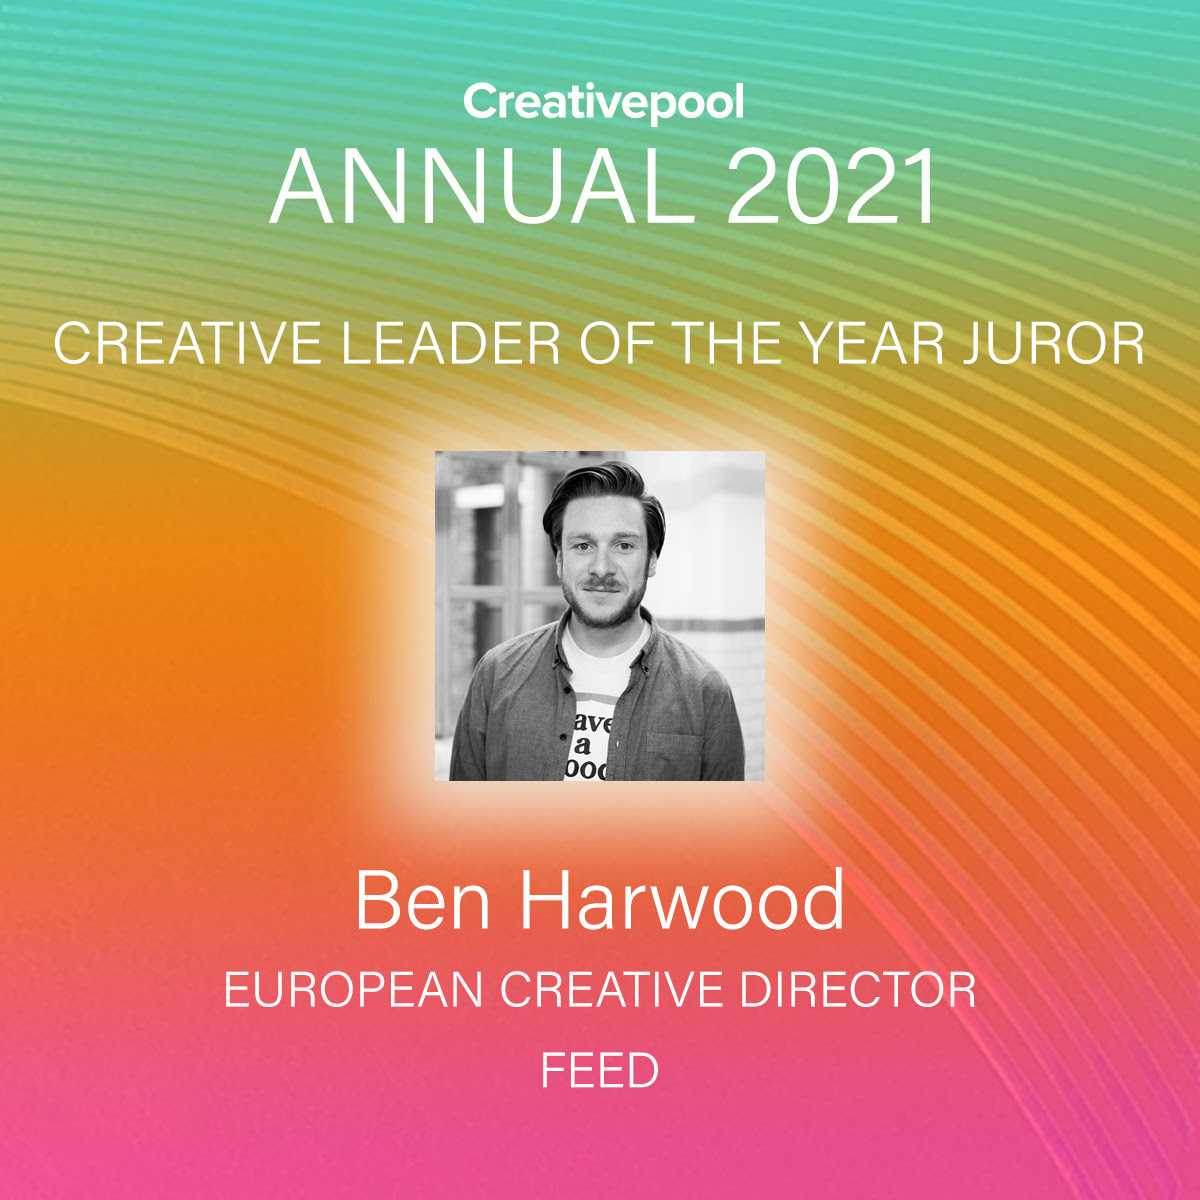 A picture of Ben Harwood as creative leader of the year juror